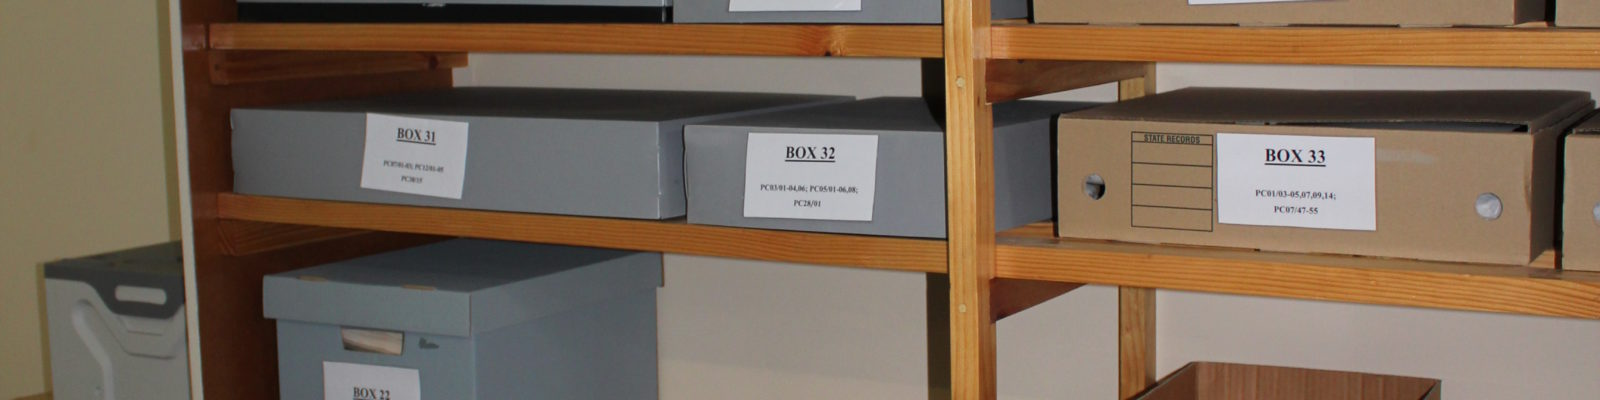 Shelves filled with grey archival boxes and brown cardboard boxes.